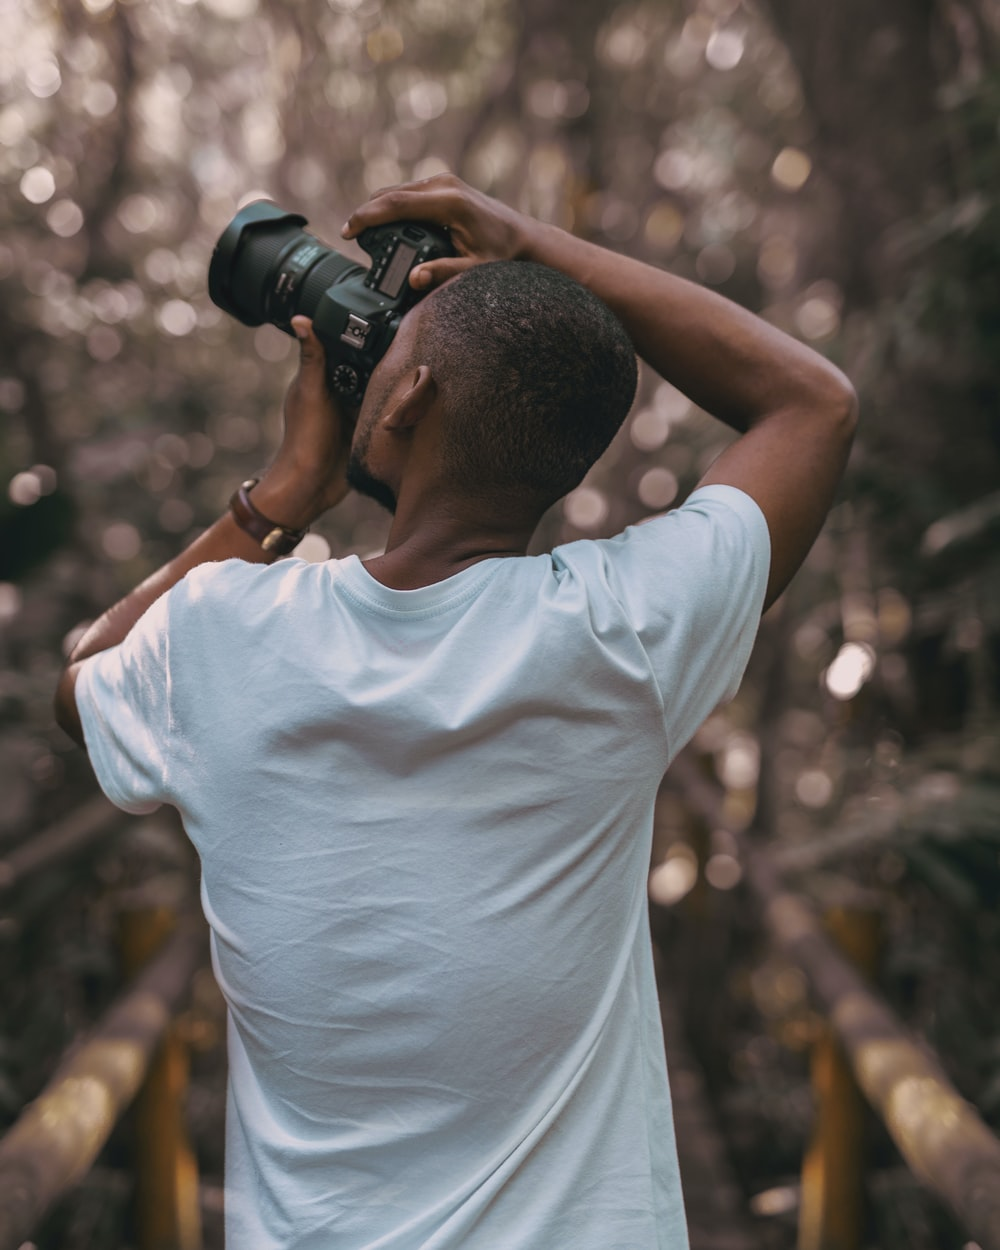 selective focus photography of a man in white t-shirt using a DSLR camera